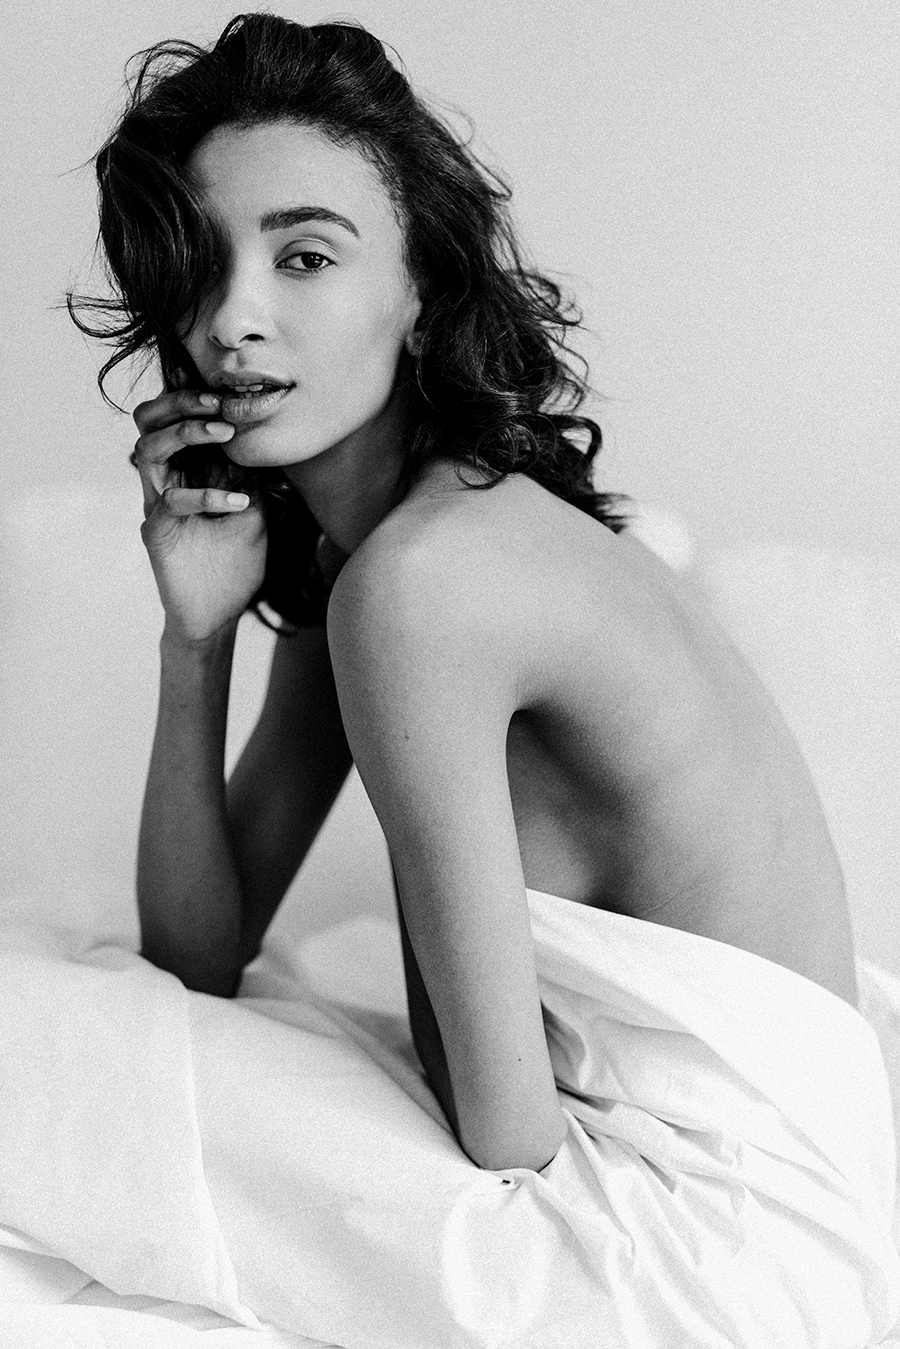 Intimate Black and White Boudoir Shoot